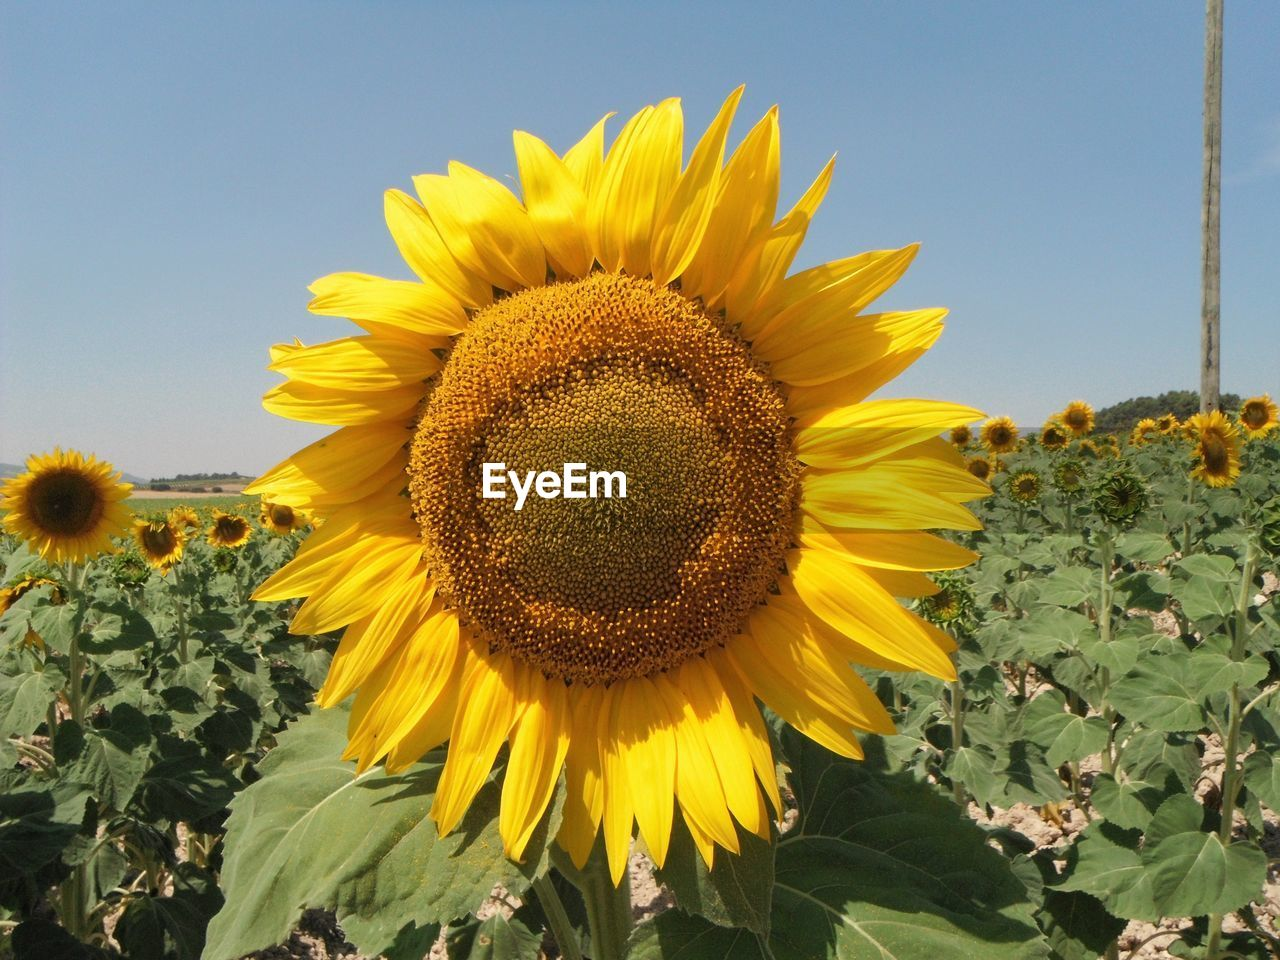 yellow, sunflower, flower, plant, flowering plant, flower head, growth, freshness, beauty in nature, inflorescence, vulnerability, fragility, petal, nature, pollen, close-up, sky, no people, leaf, plant part, outdoors, springtime